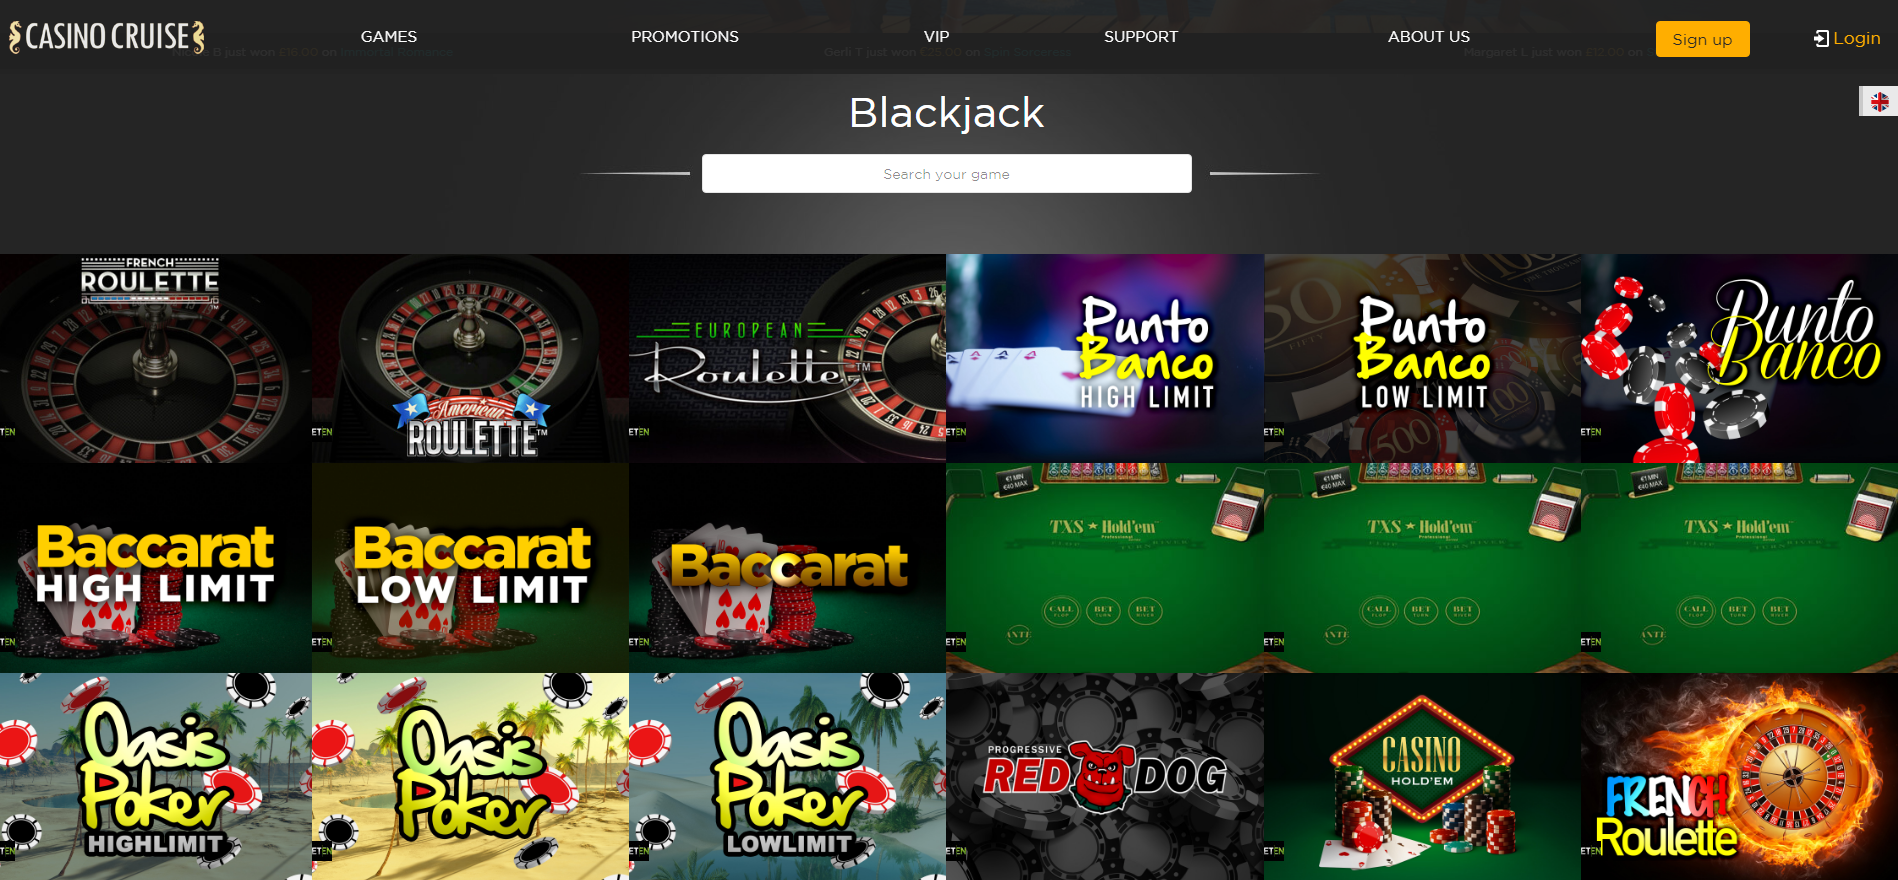 Play-Blackjack-Online-CasinoCruise